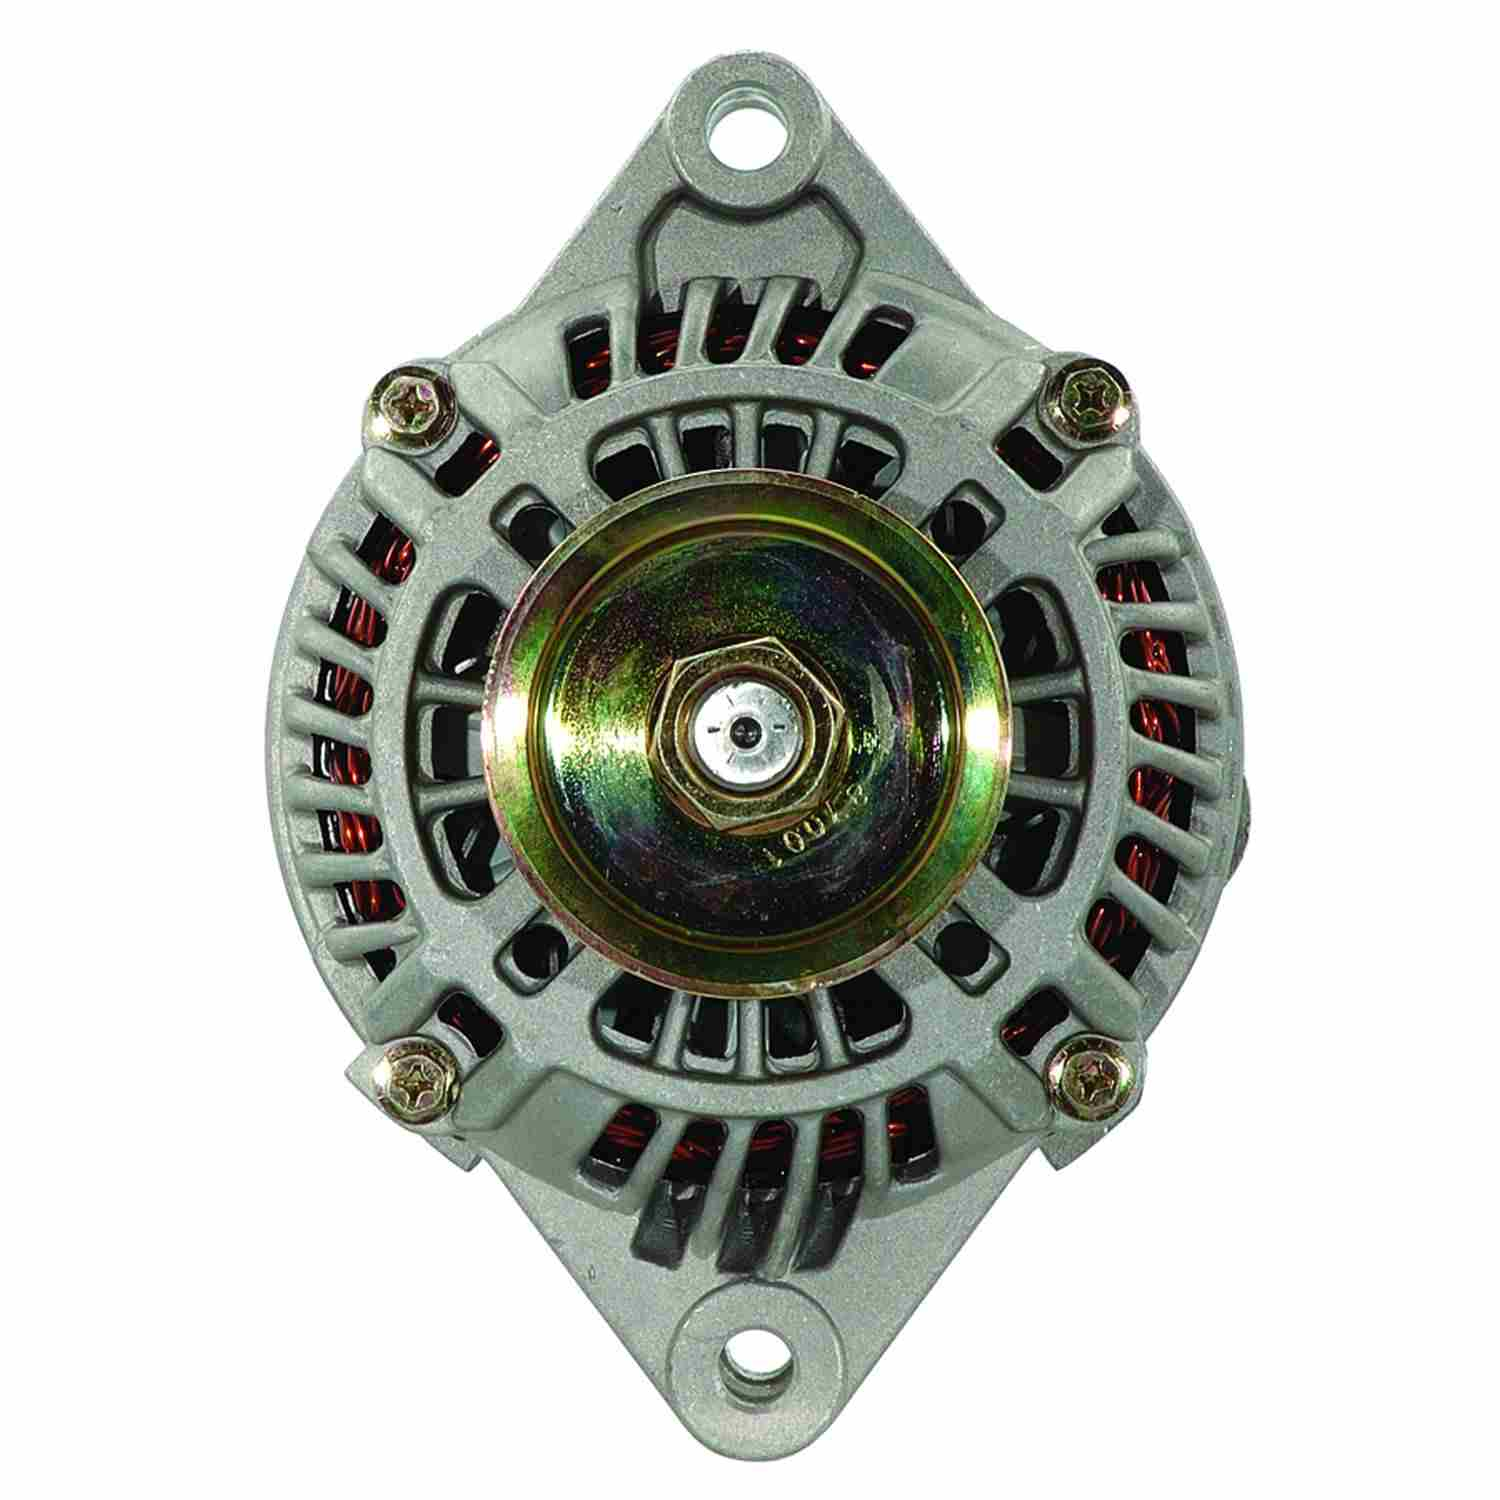 ACDELCO GOLD/PROFESSIONAL - Alternator - DCC 335-1167